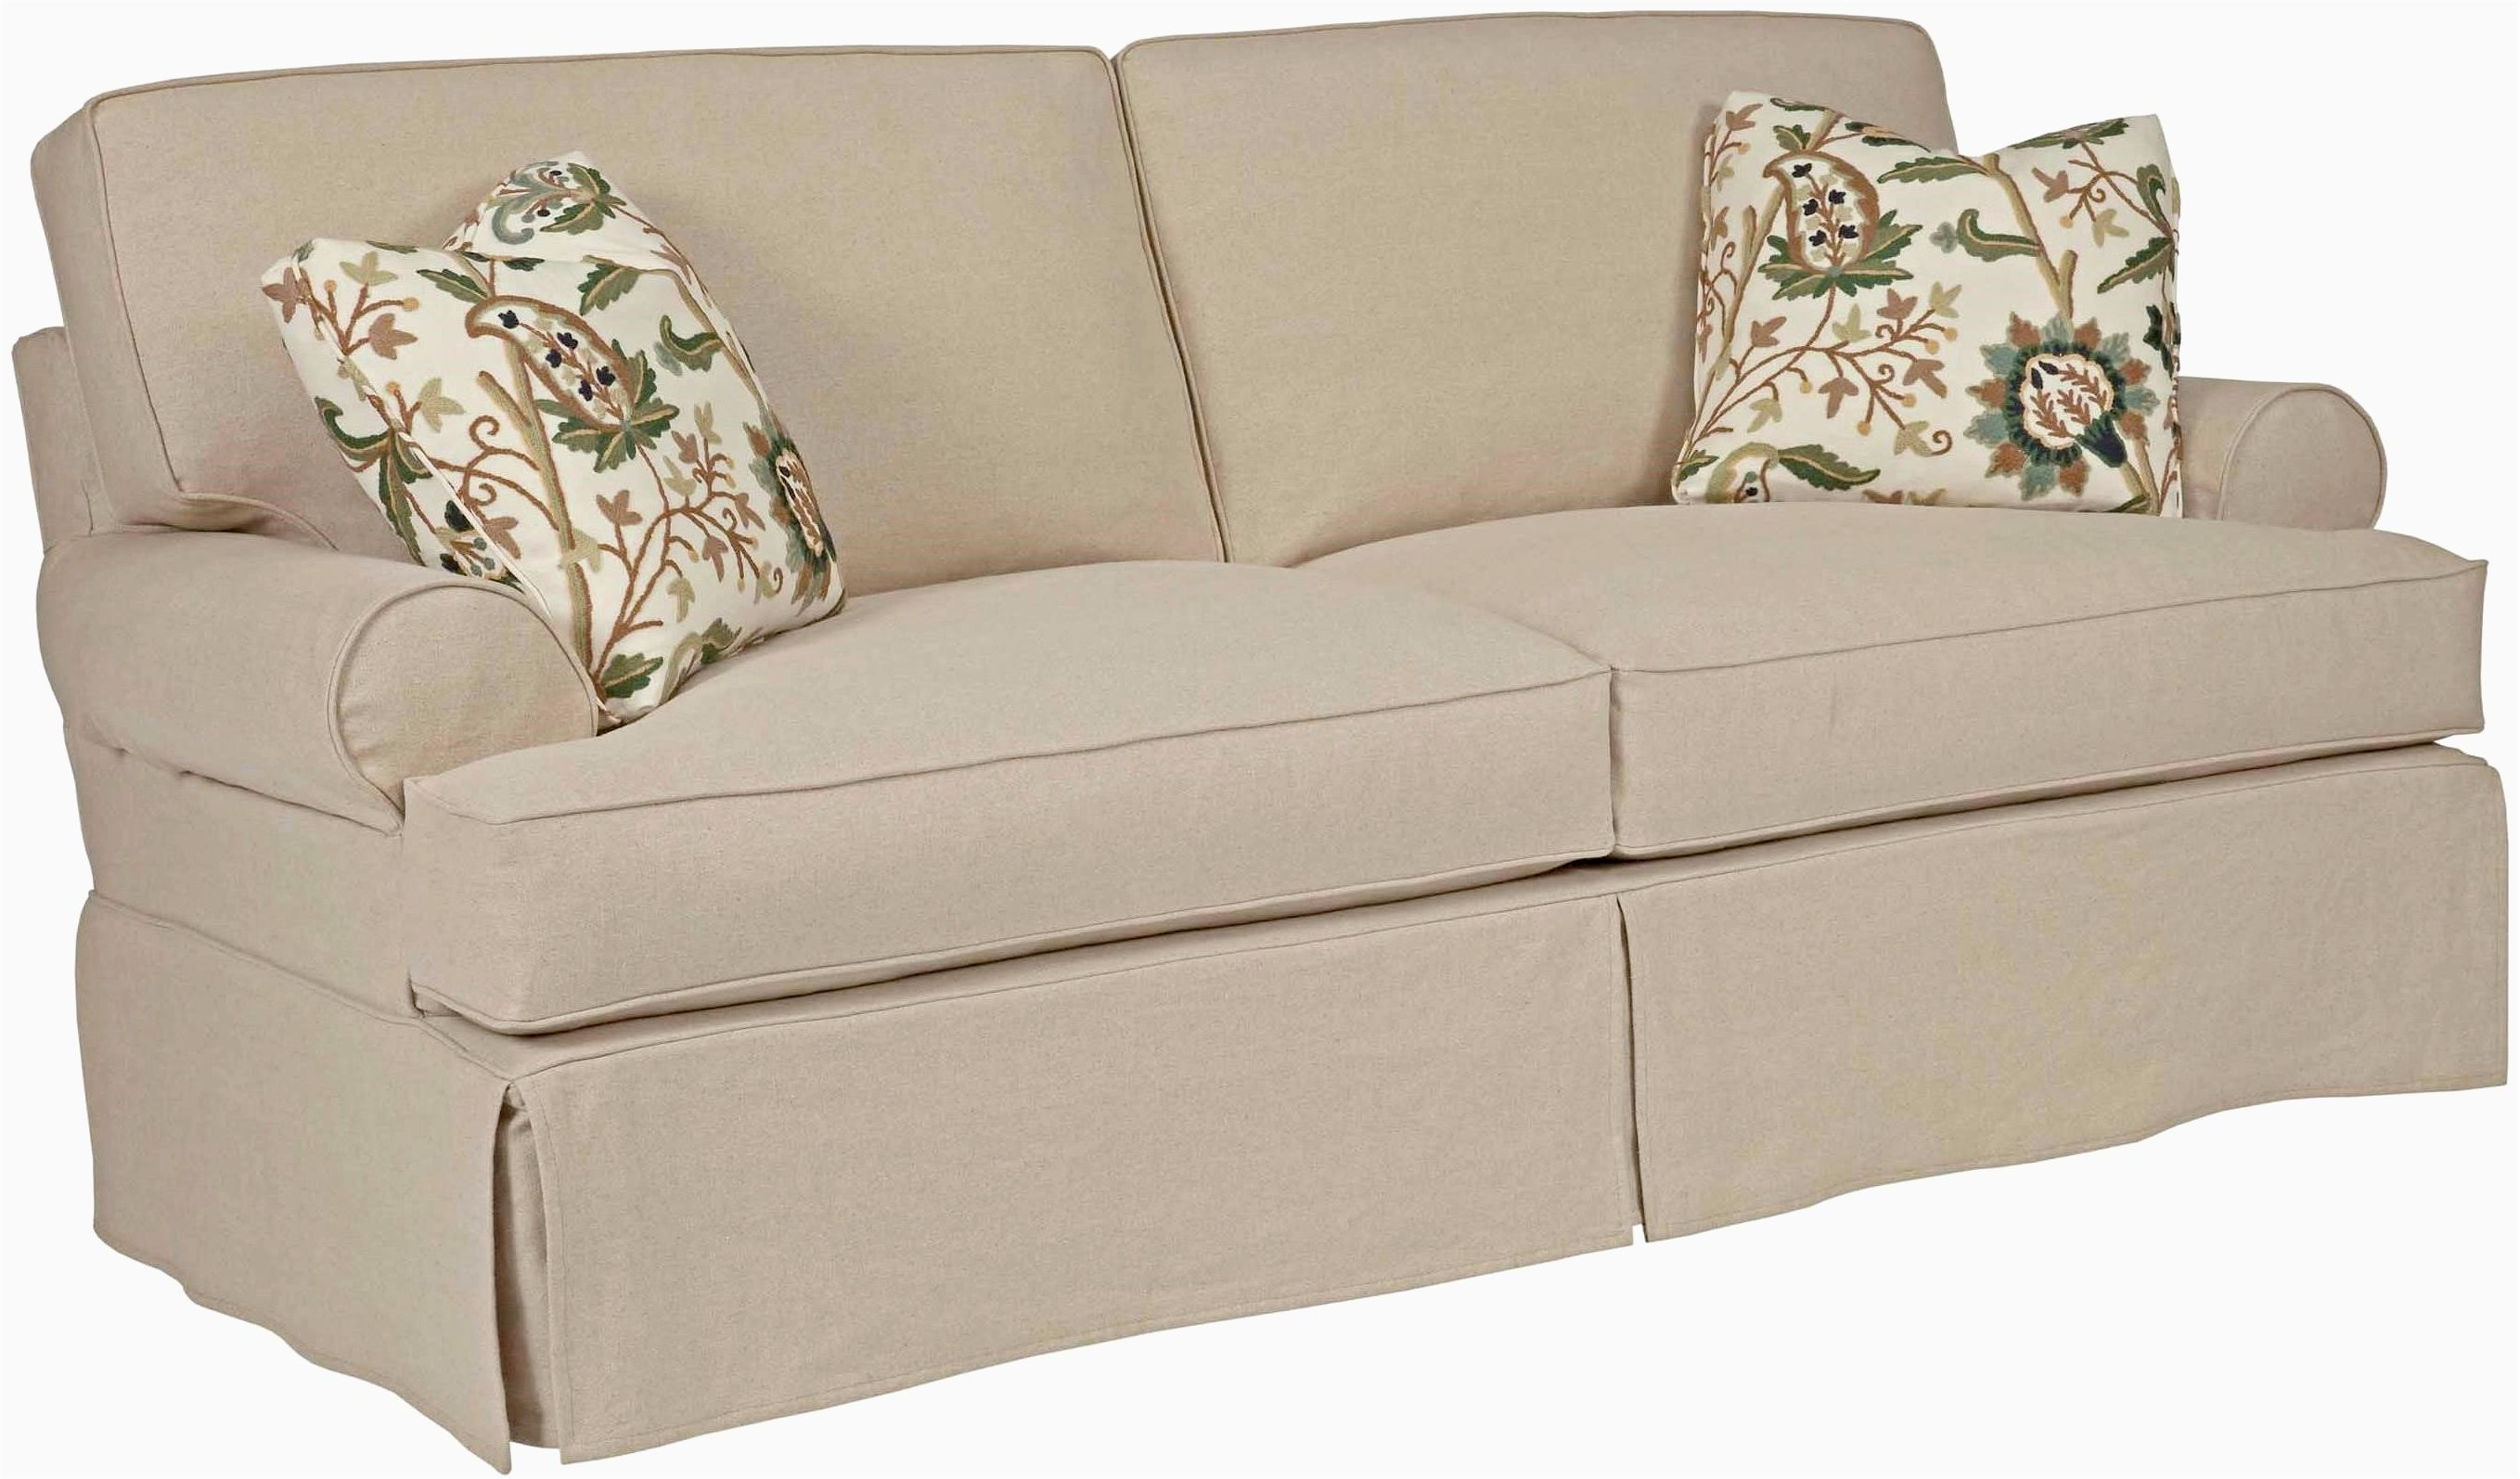 incredible sure fit slipcovers for sofas design-Excellent Sure Fit Slipcovers for sofas Inspiration